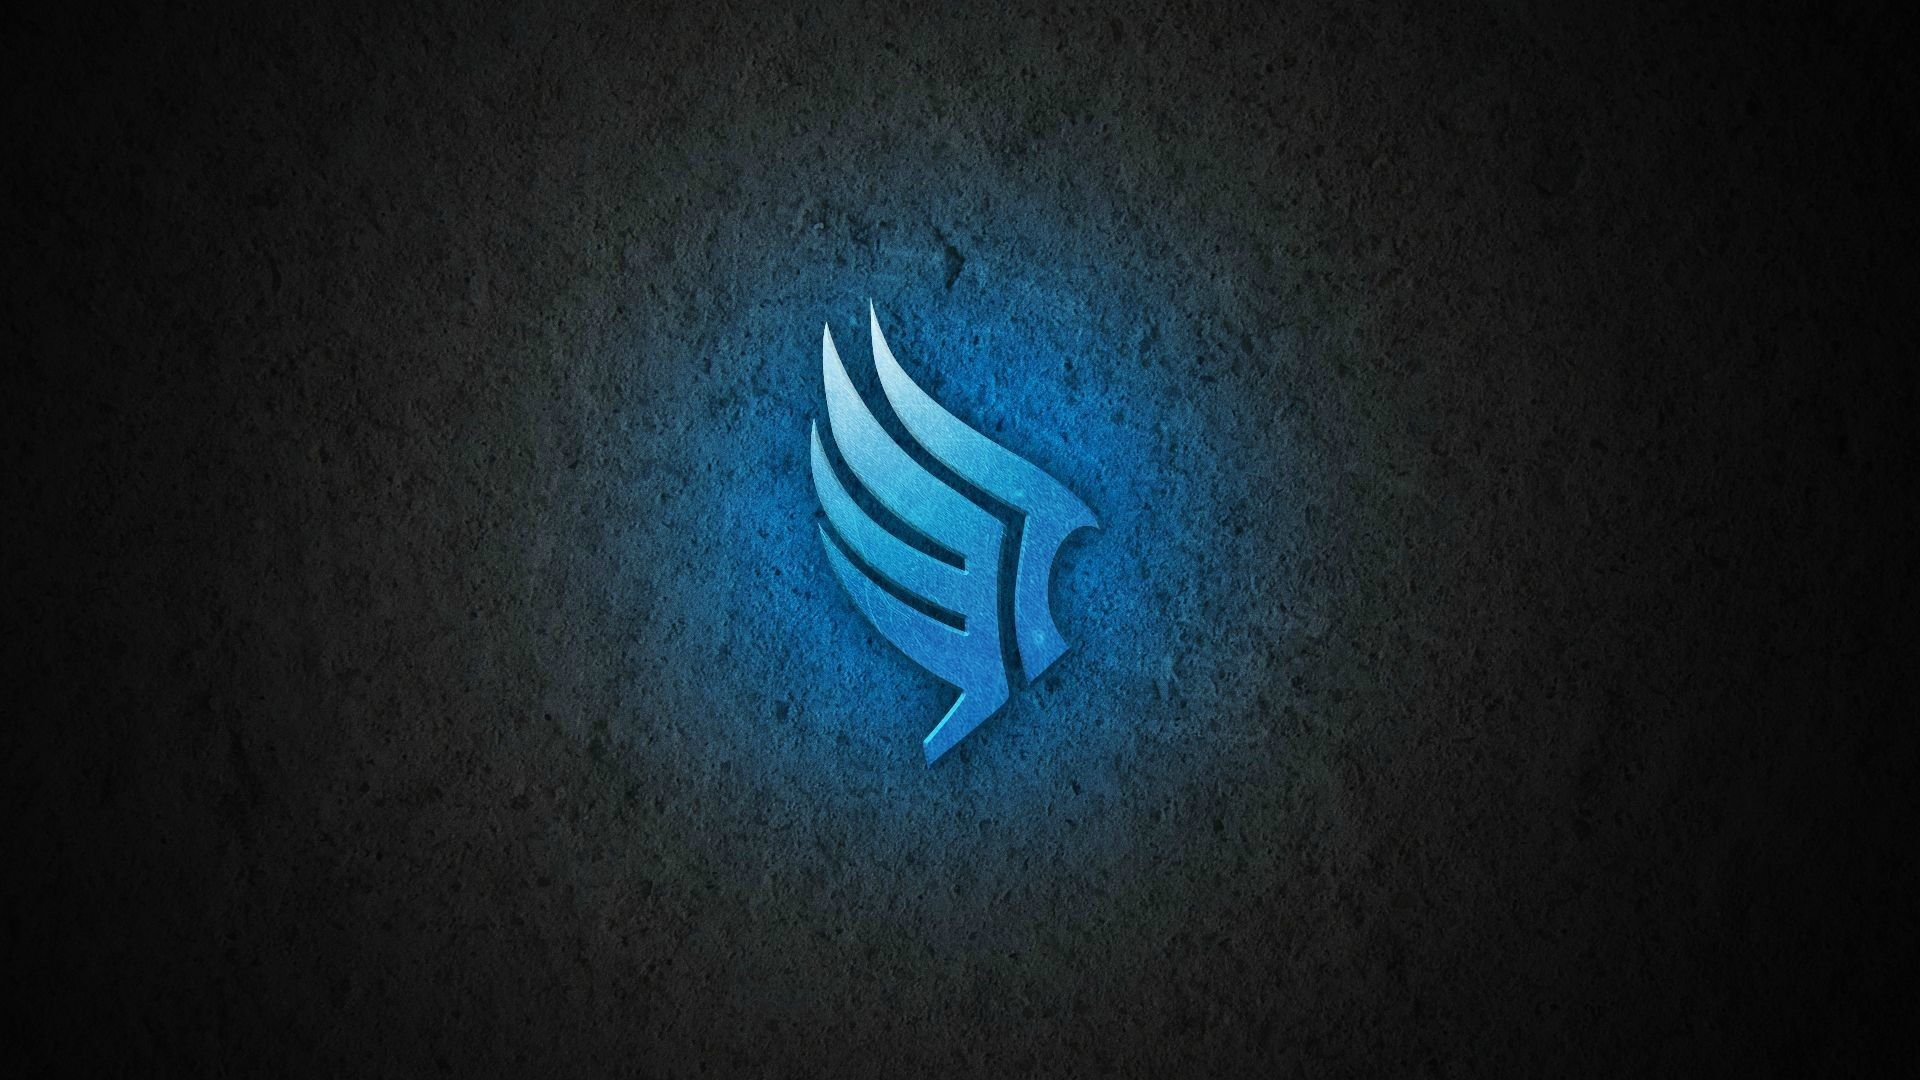 78 Blue Gaming Wallpapers On Wallpaperplay Gaming Wallpapers Retro Games Wallpaper Pc Games Wallpapers